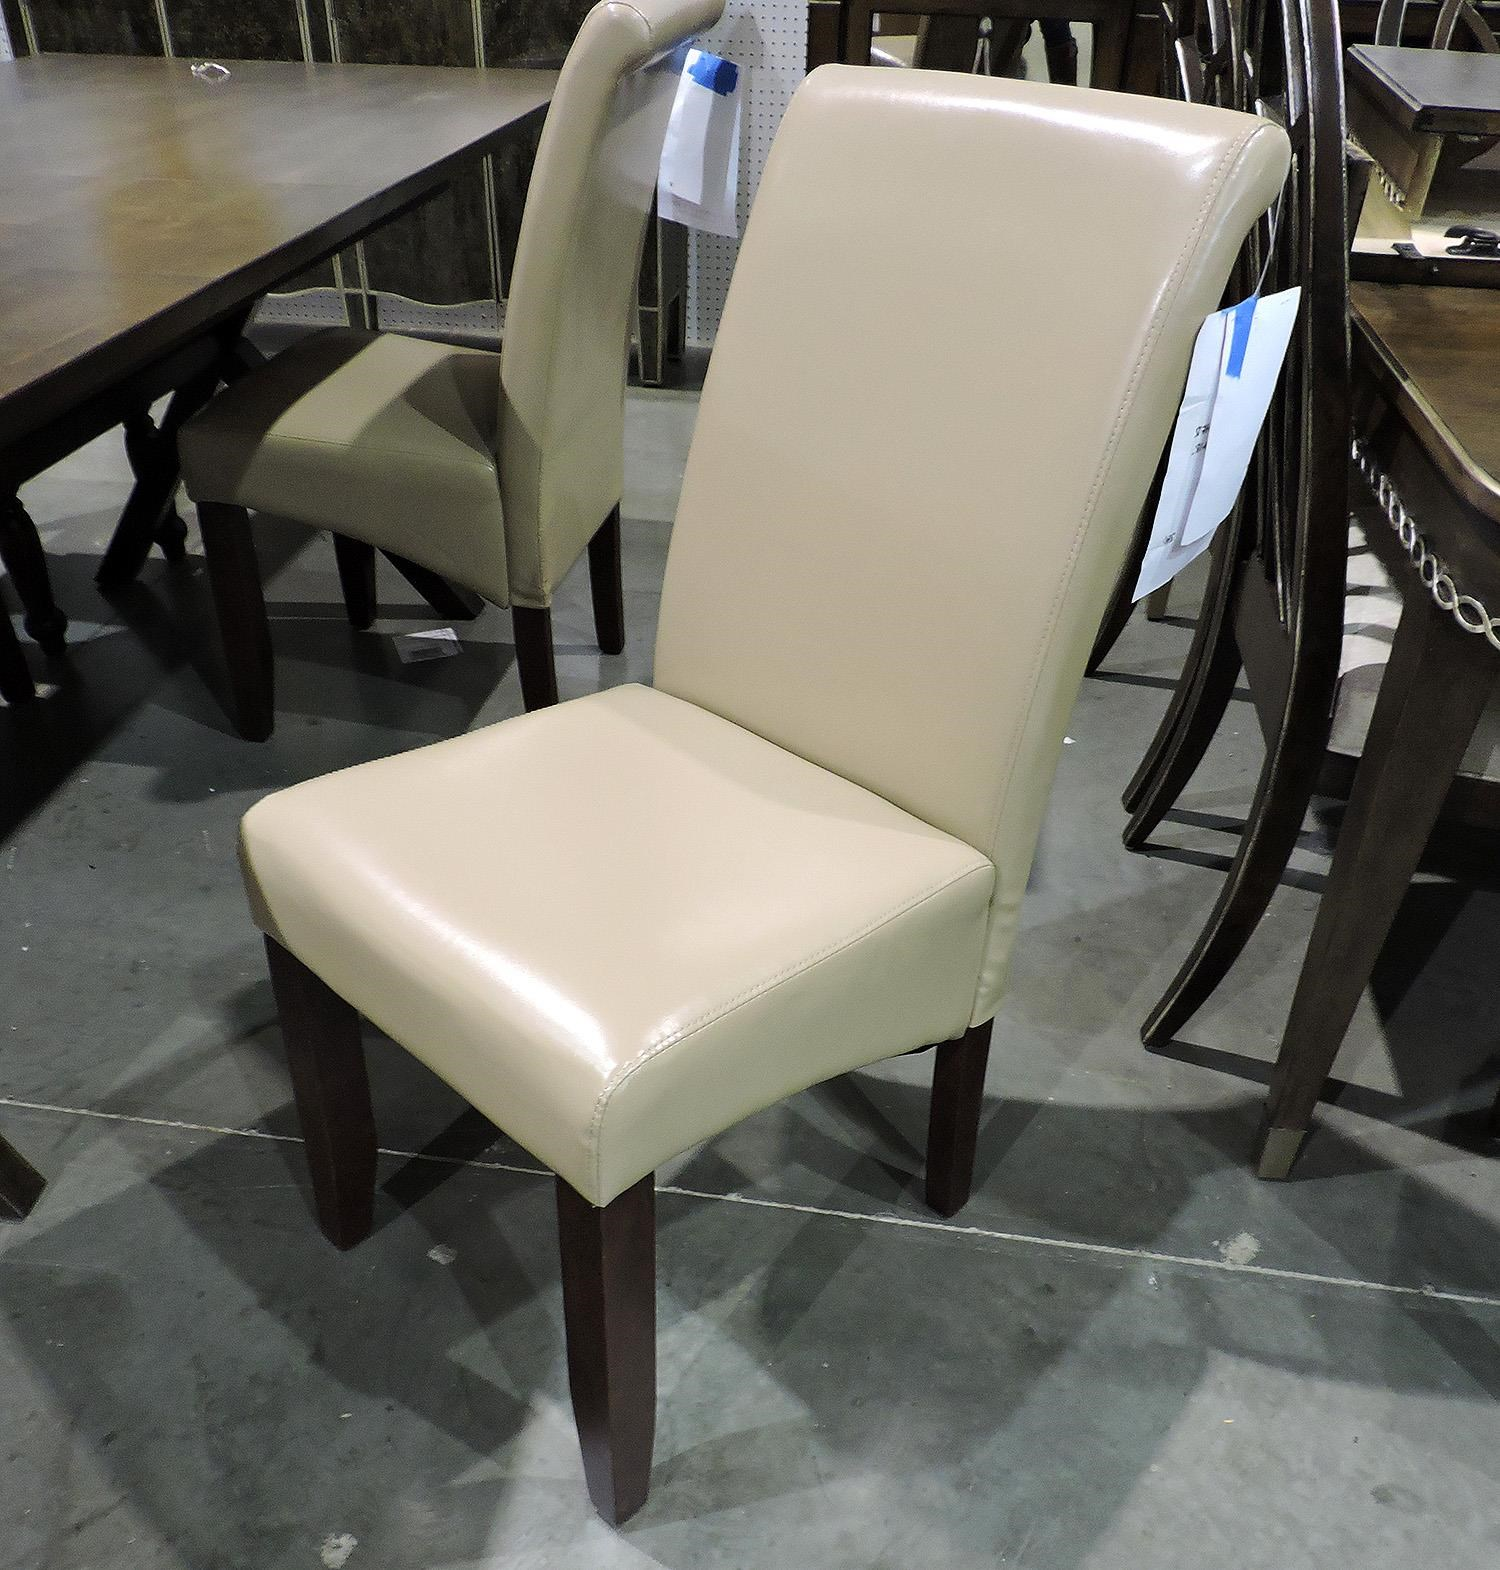 Jofran Clearance Parson Chair - Item Number: 086508030